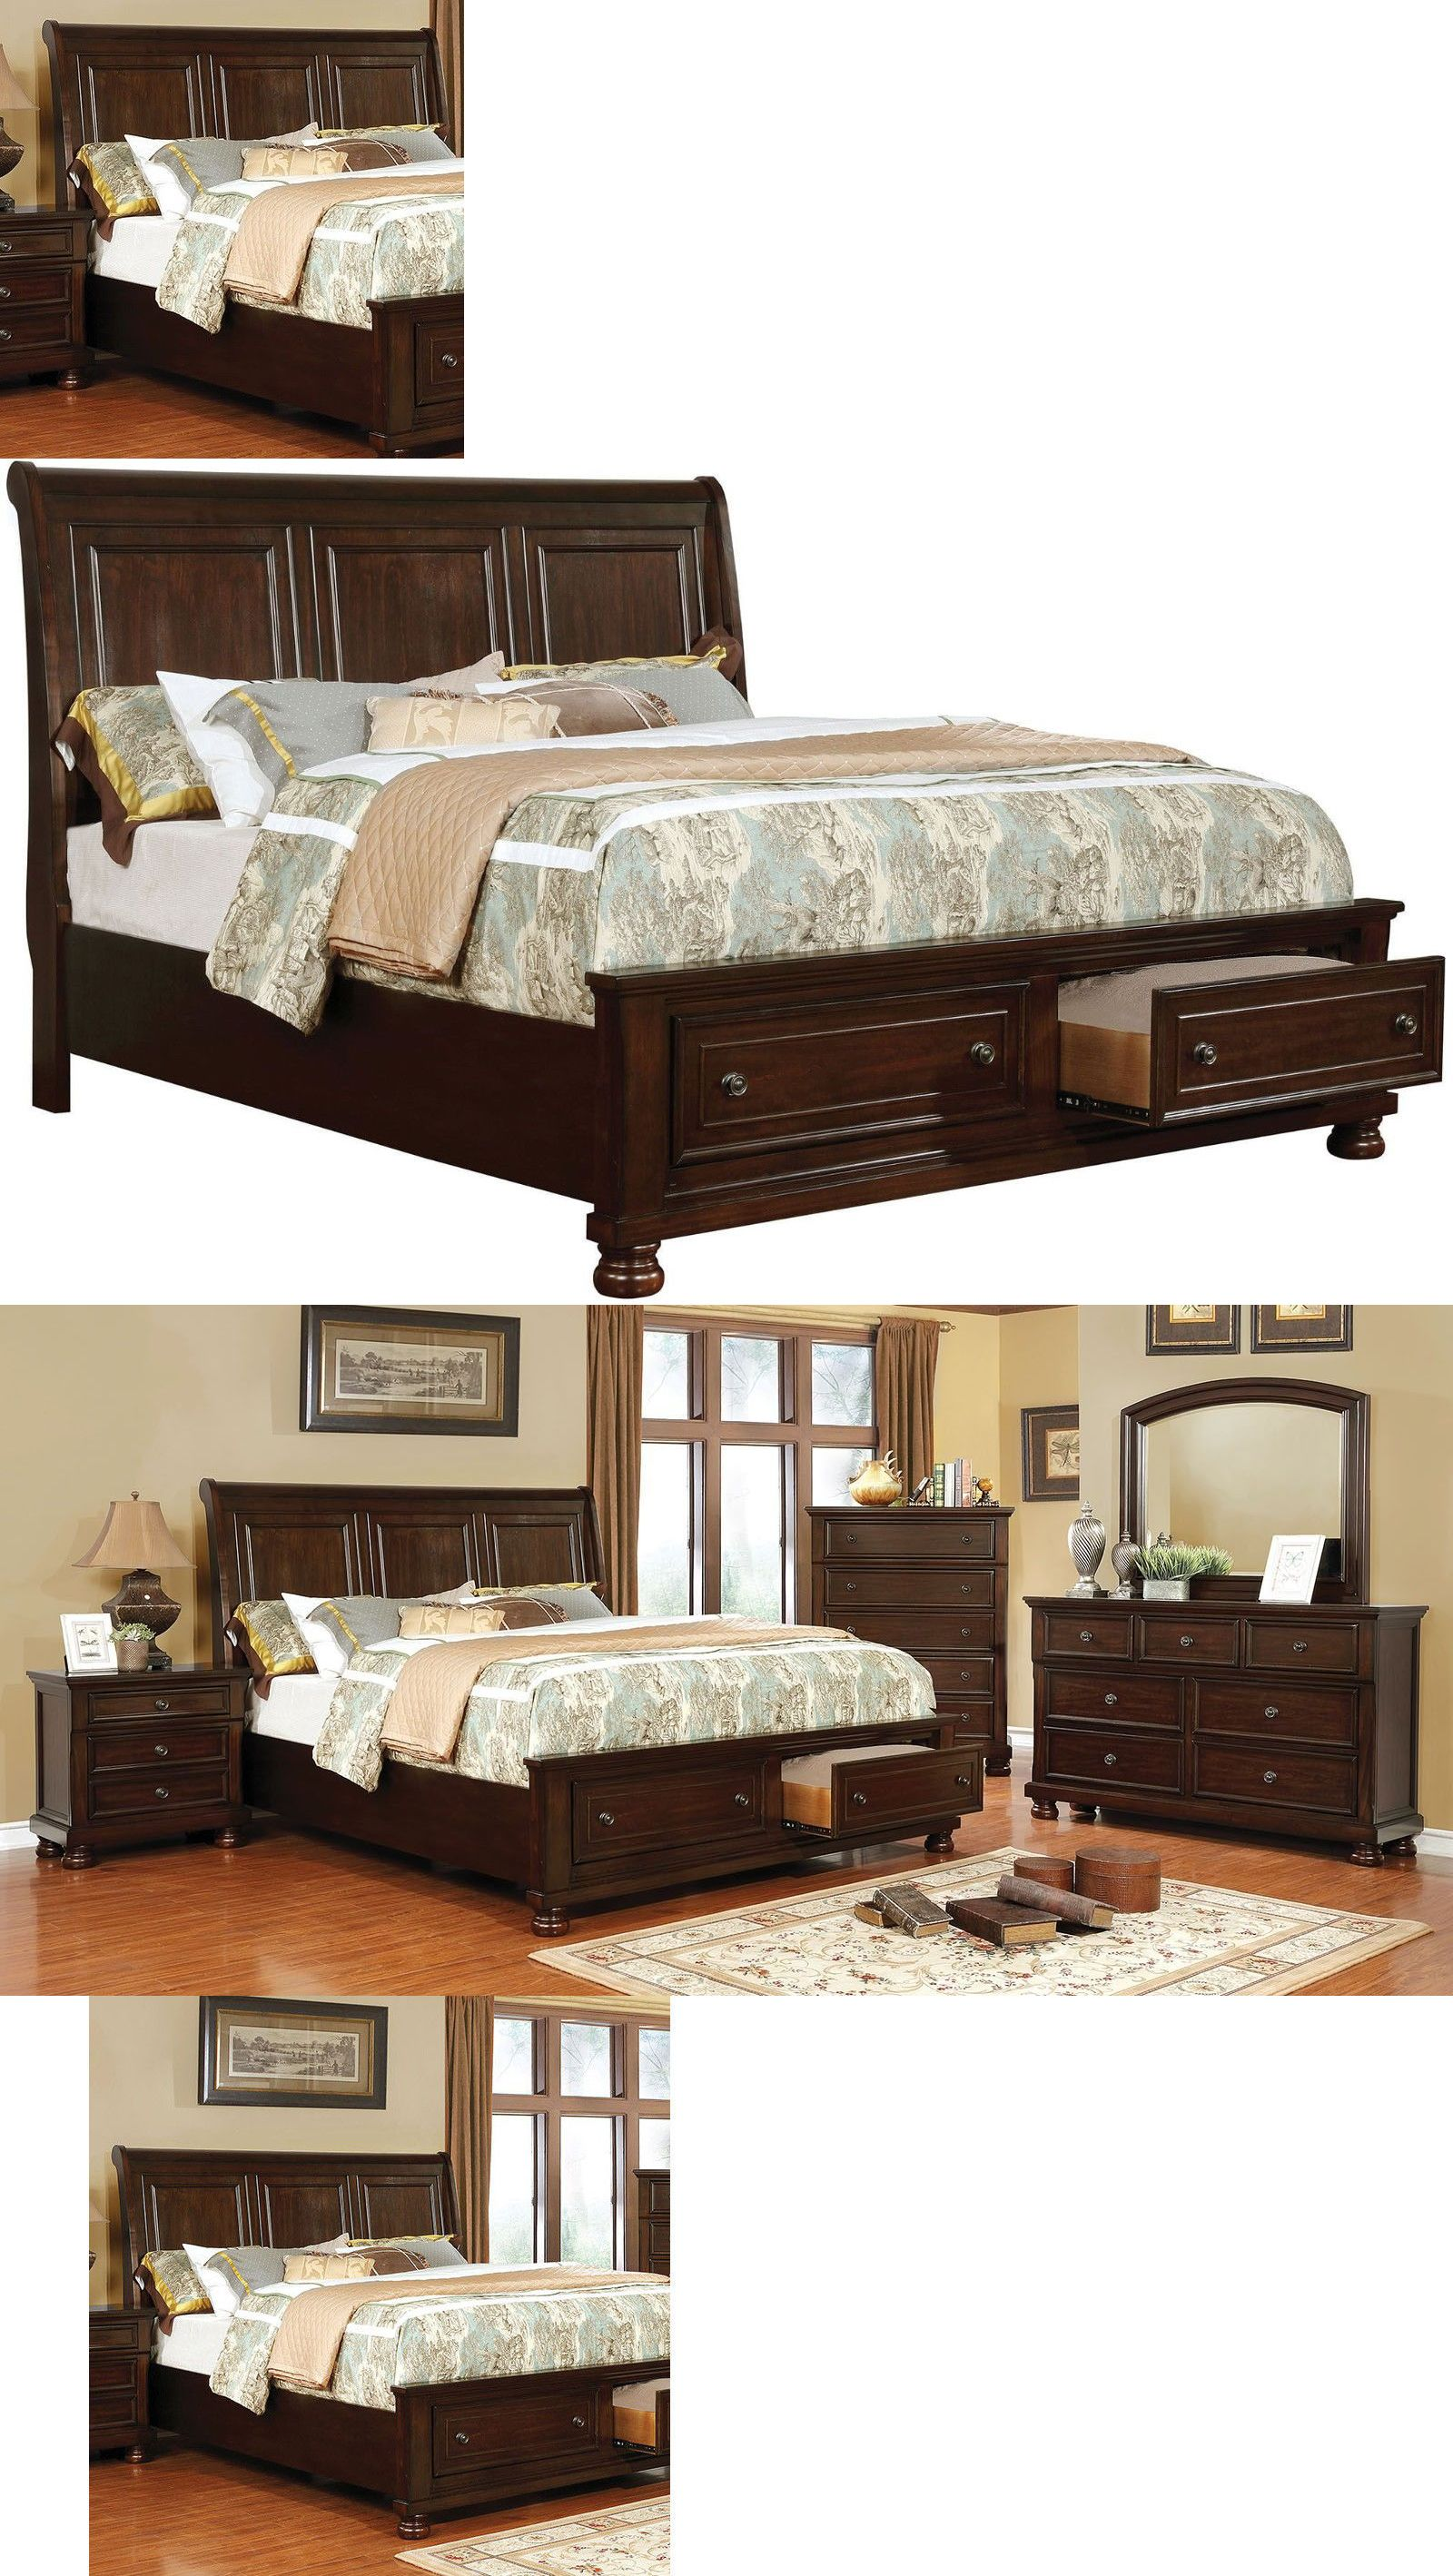 Bedroom Sets 20480 Beautiful Elegant Modern Brown Cherry 1pc Bedframe Quee Cherry Wood Bedroom Furniture Woodworking Projects Furniture Wood Bedroom Furniture